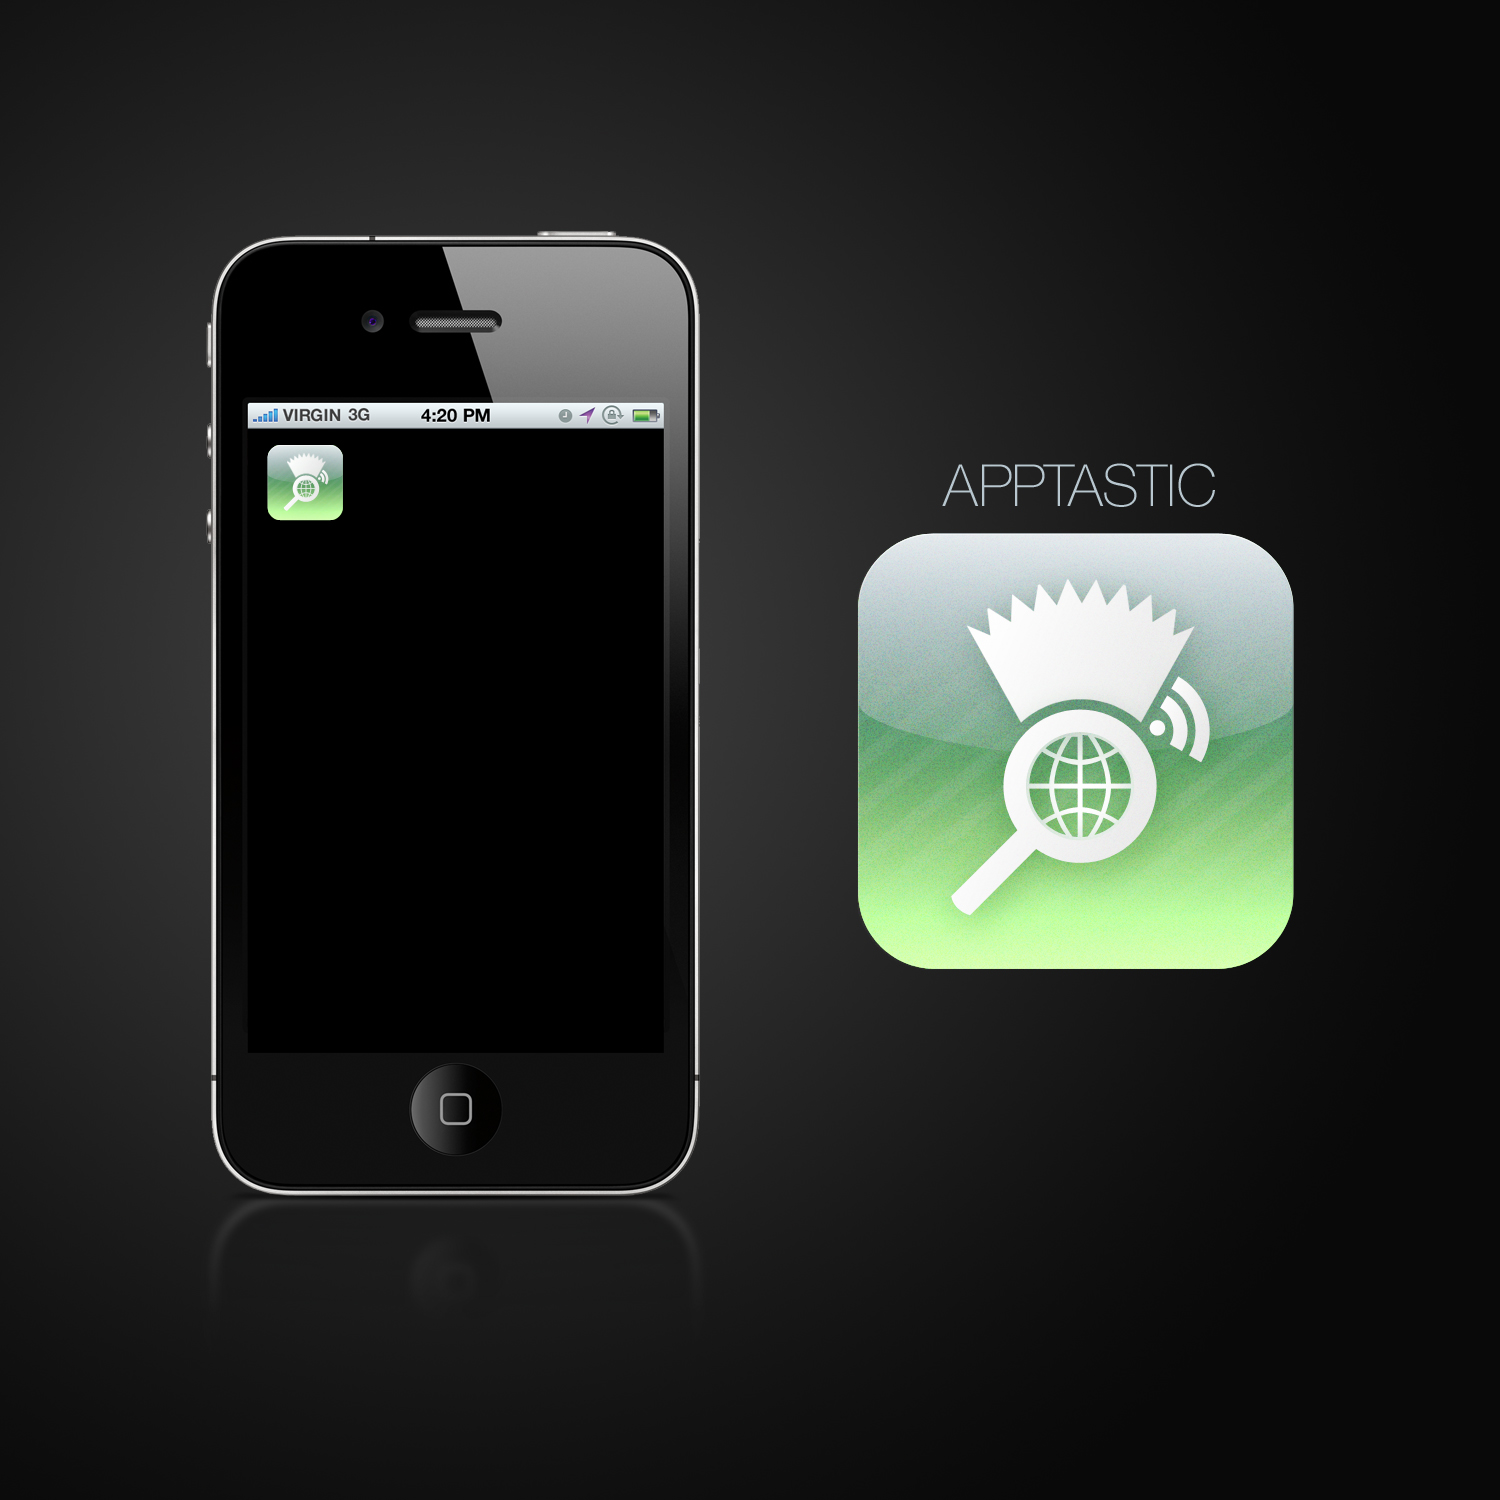 Iphone app icon design by gillesvalk on deviantart for Designing an iphone app